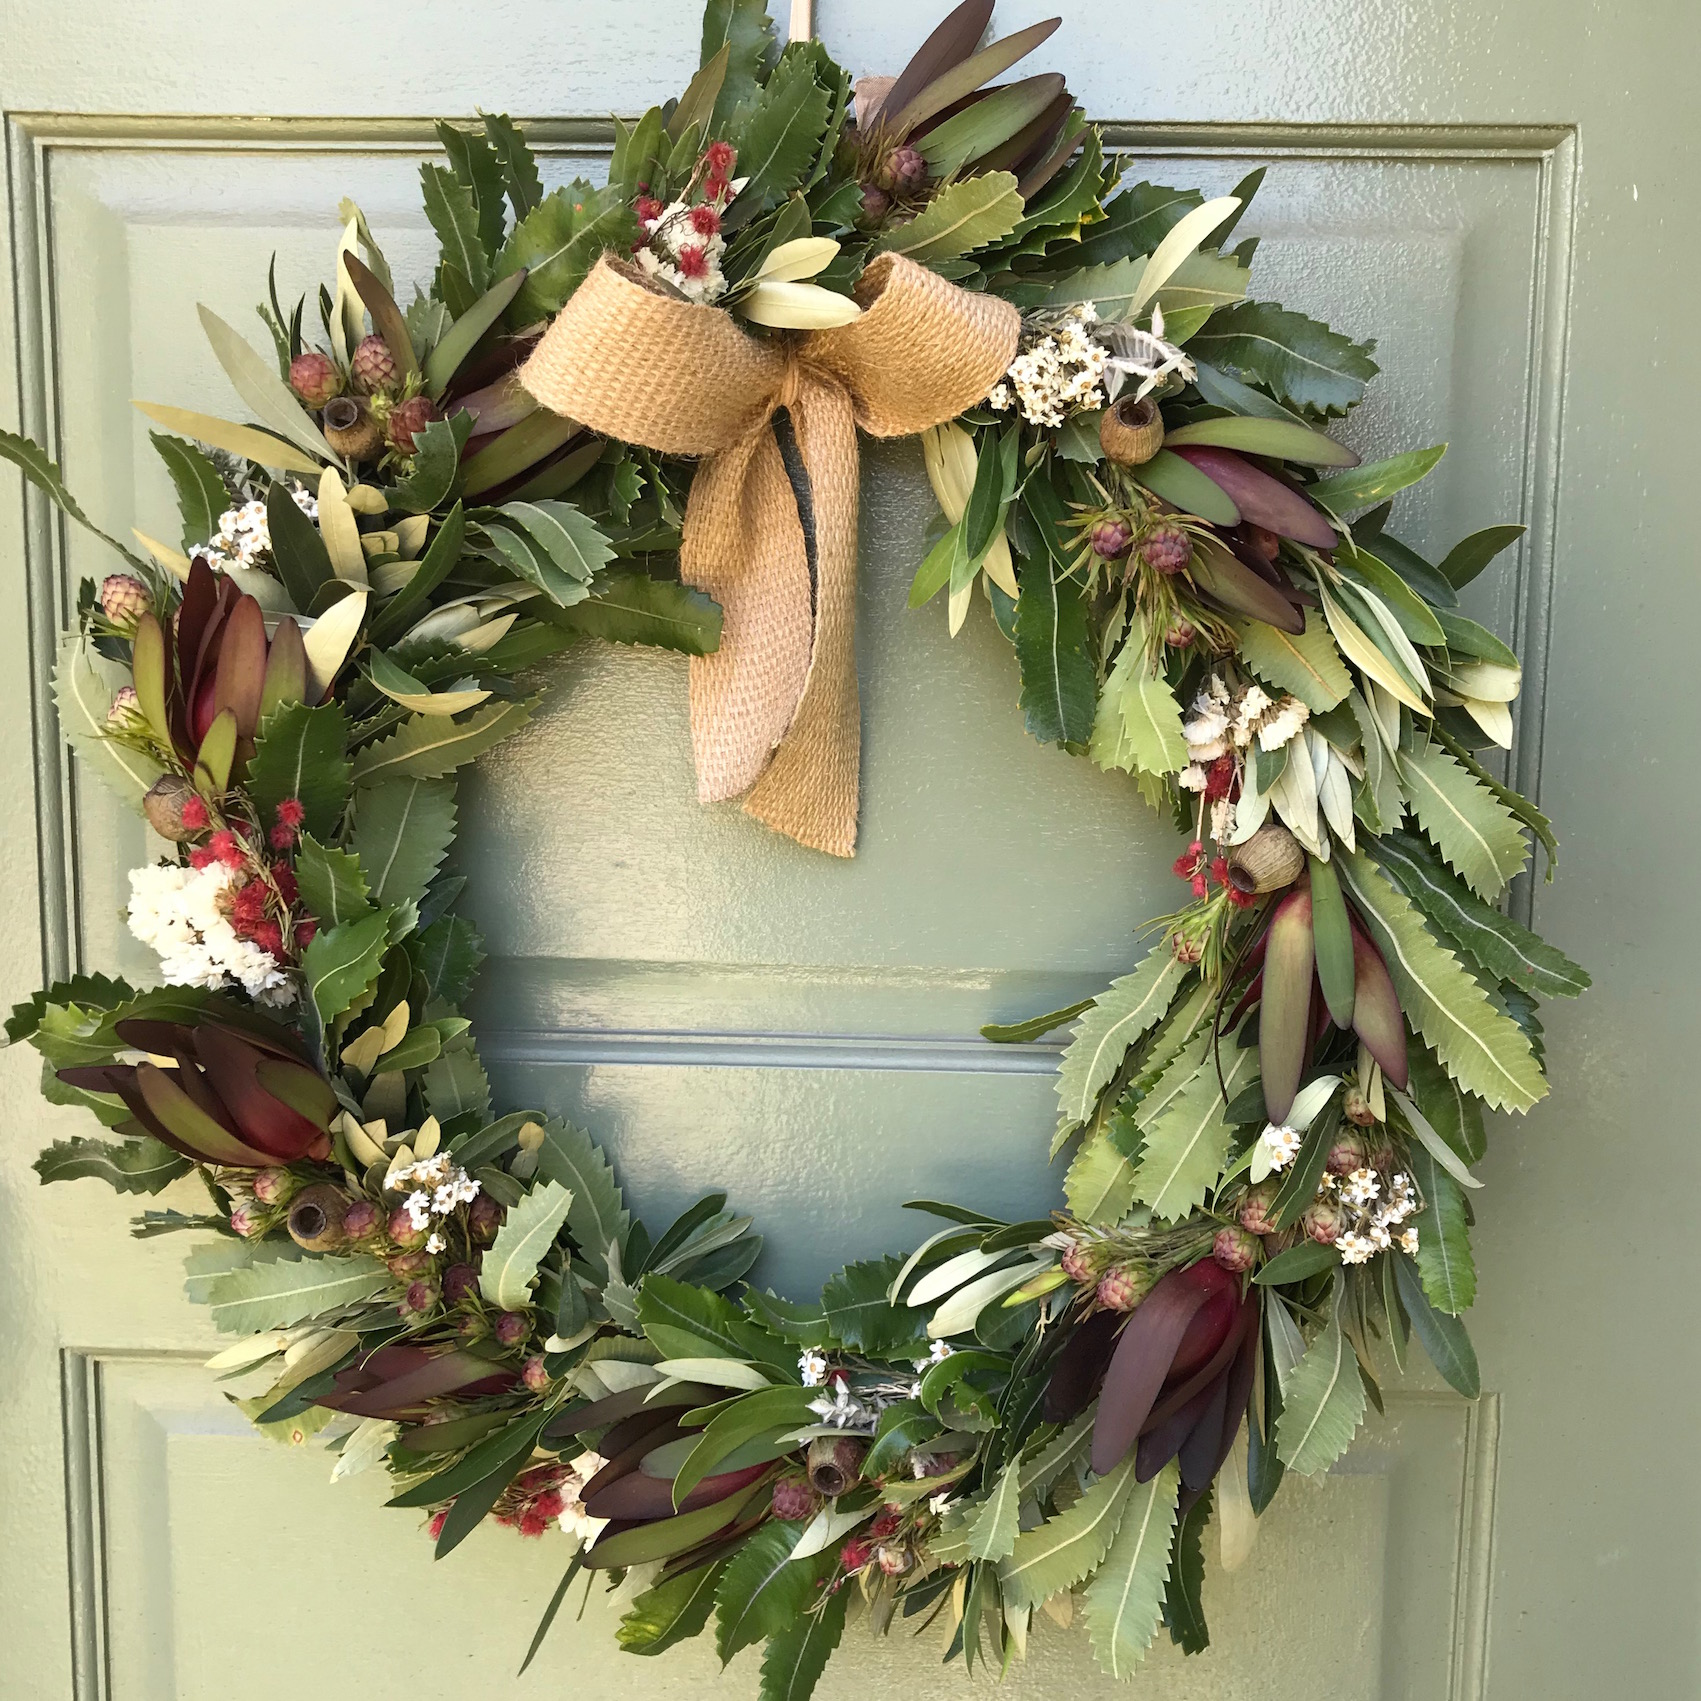 Christmas Wreath Making Workshop In Chippendale Sydney